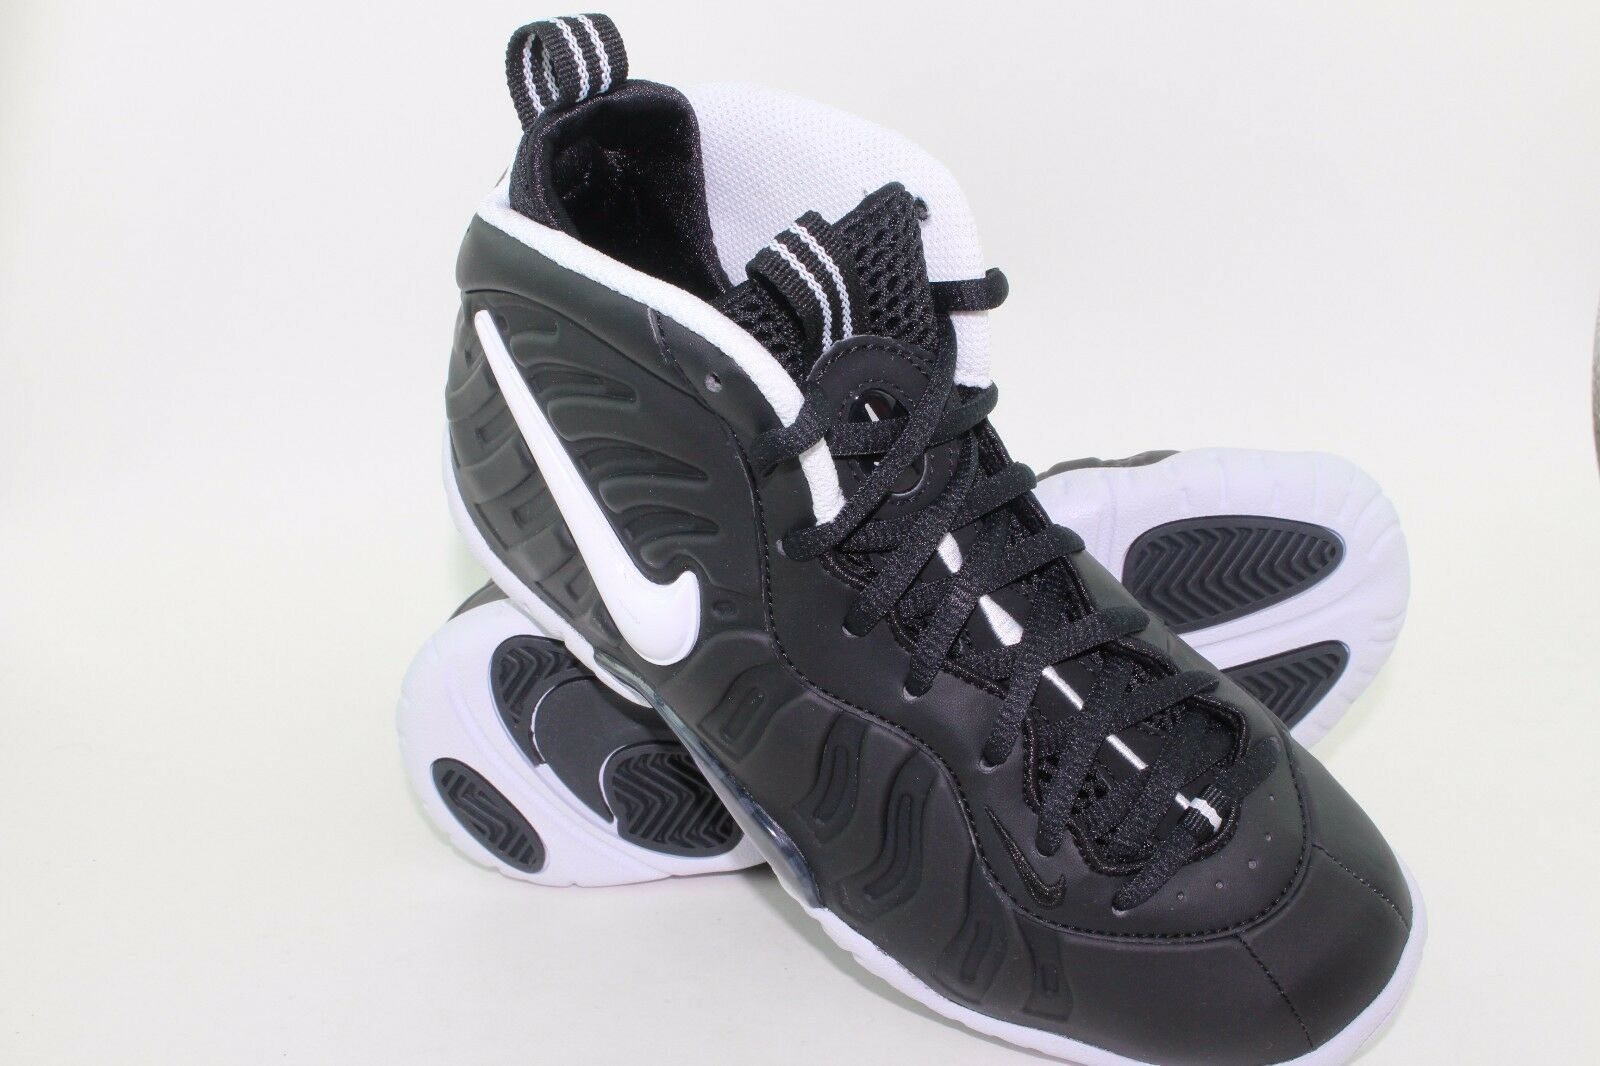 NIKE LITTLE POSITE PRO  DR DR DR DOOM  YOUTH SIZE 4.0 SAME AS WOMAN 5.5 NEW BLACK WHIT 68ea50